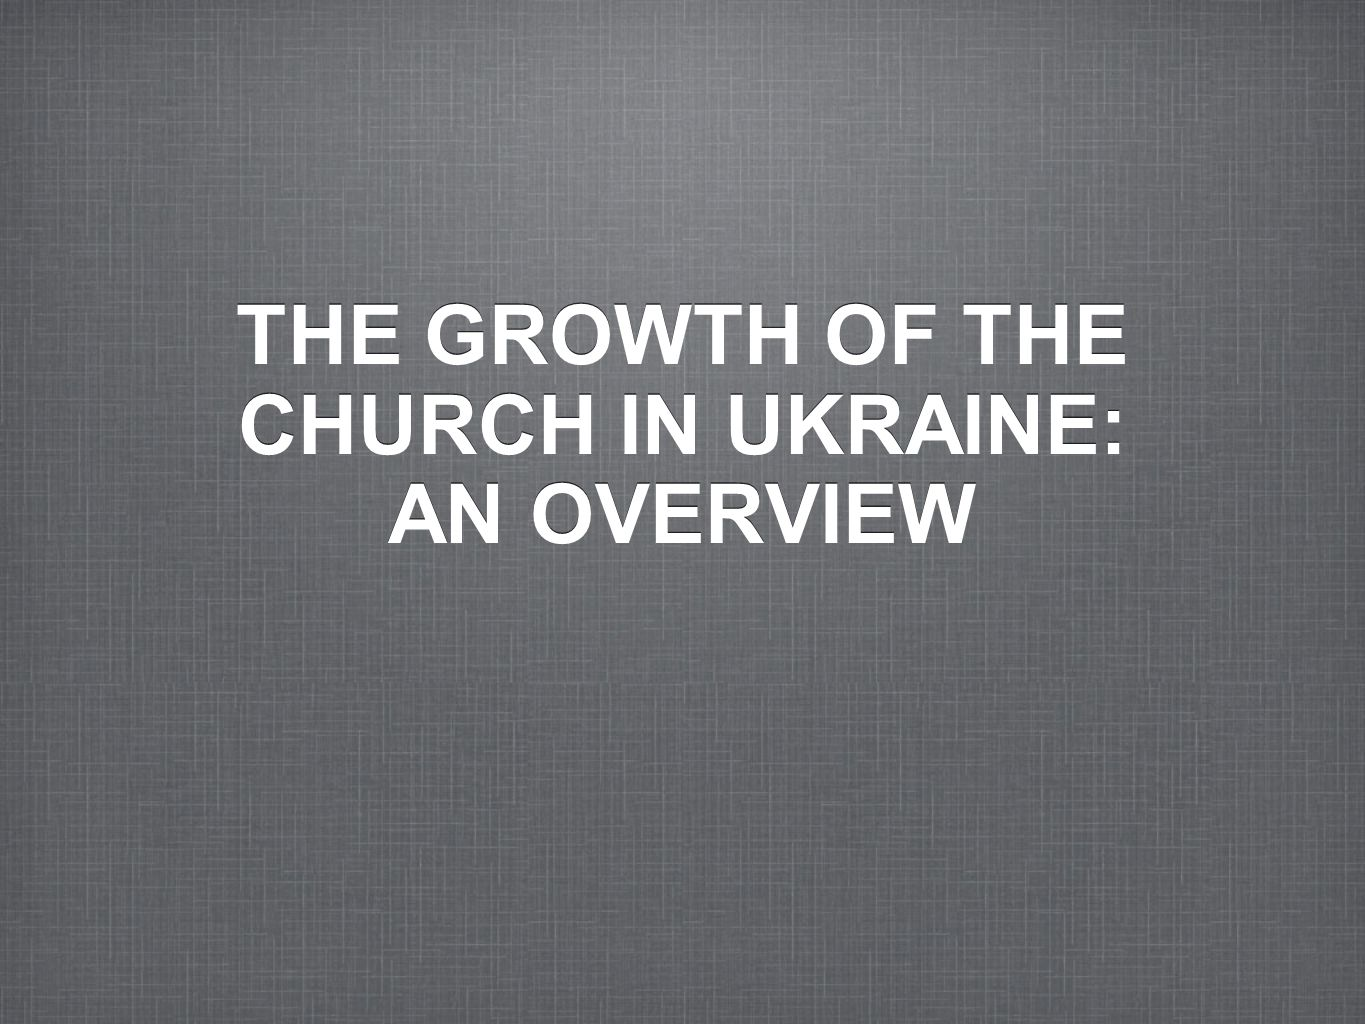 THE GROWTH OF THE CHURCH IN UKRAINE: AN OVERVIEW